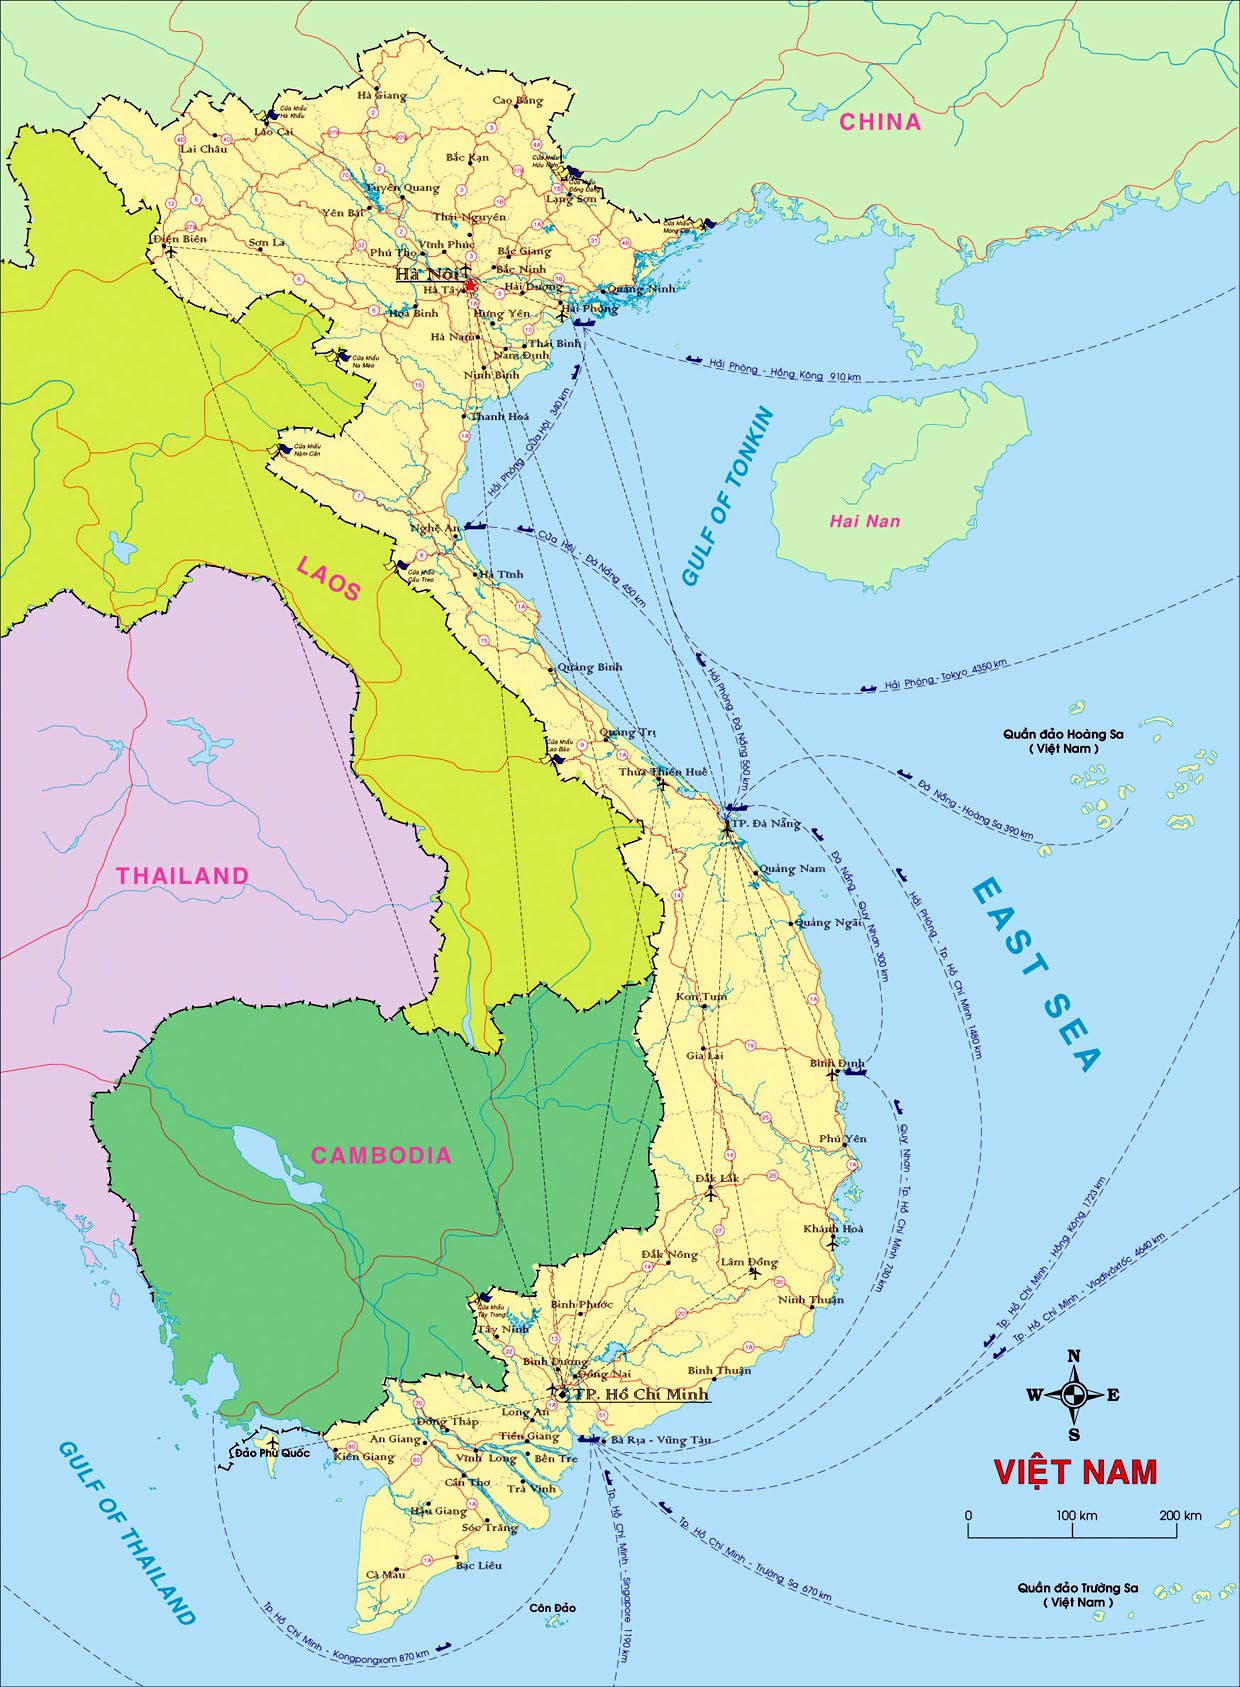 Viet Nam Map Vietnam Maps | Printable Maps of Vietnam for Download